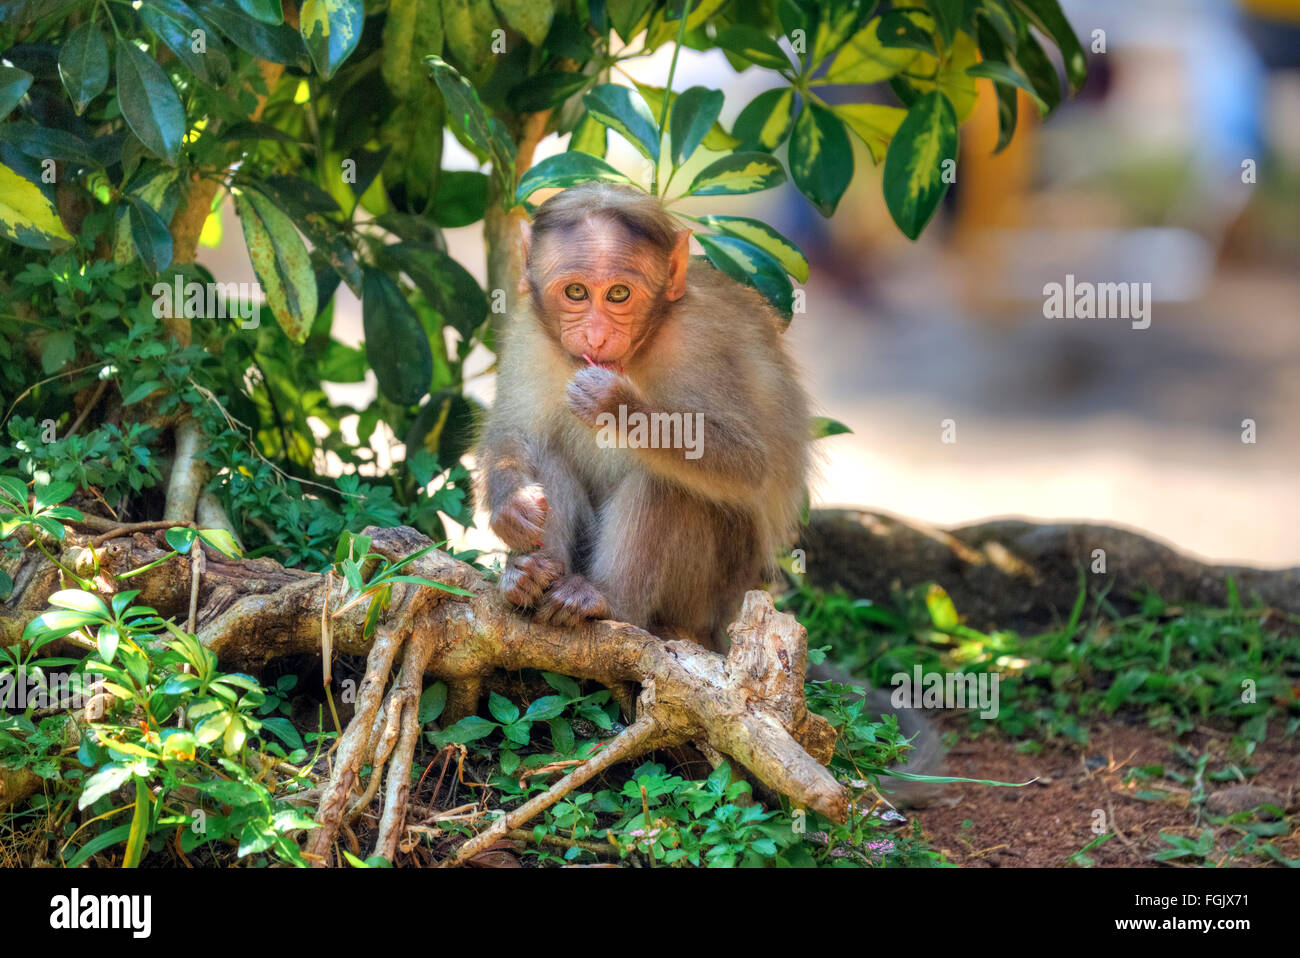 Monkey in the Periyar National Park, Thekkady, Kerala, India - Stock Image